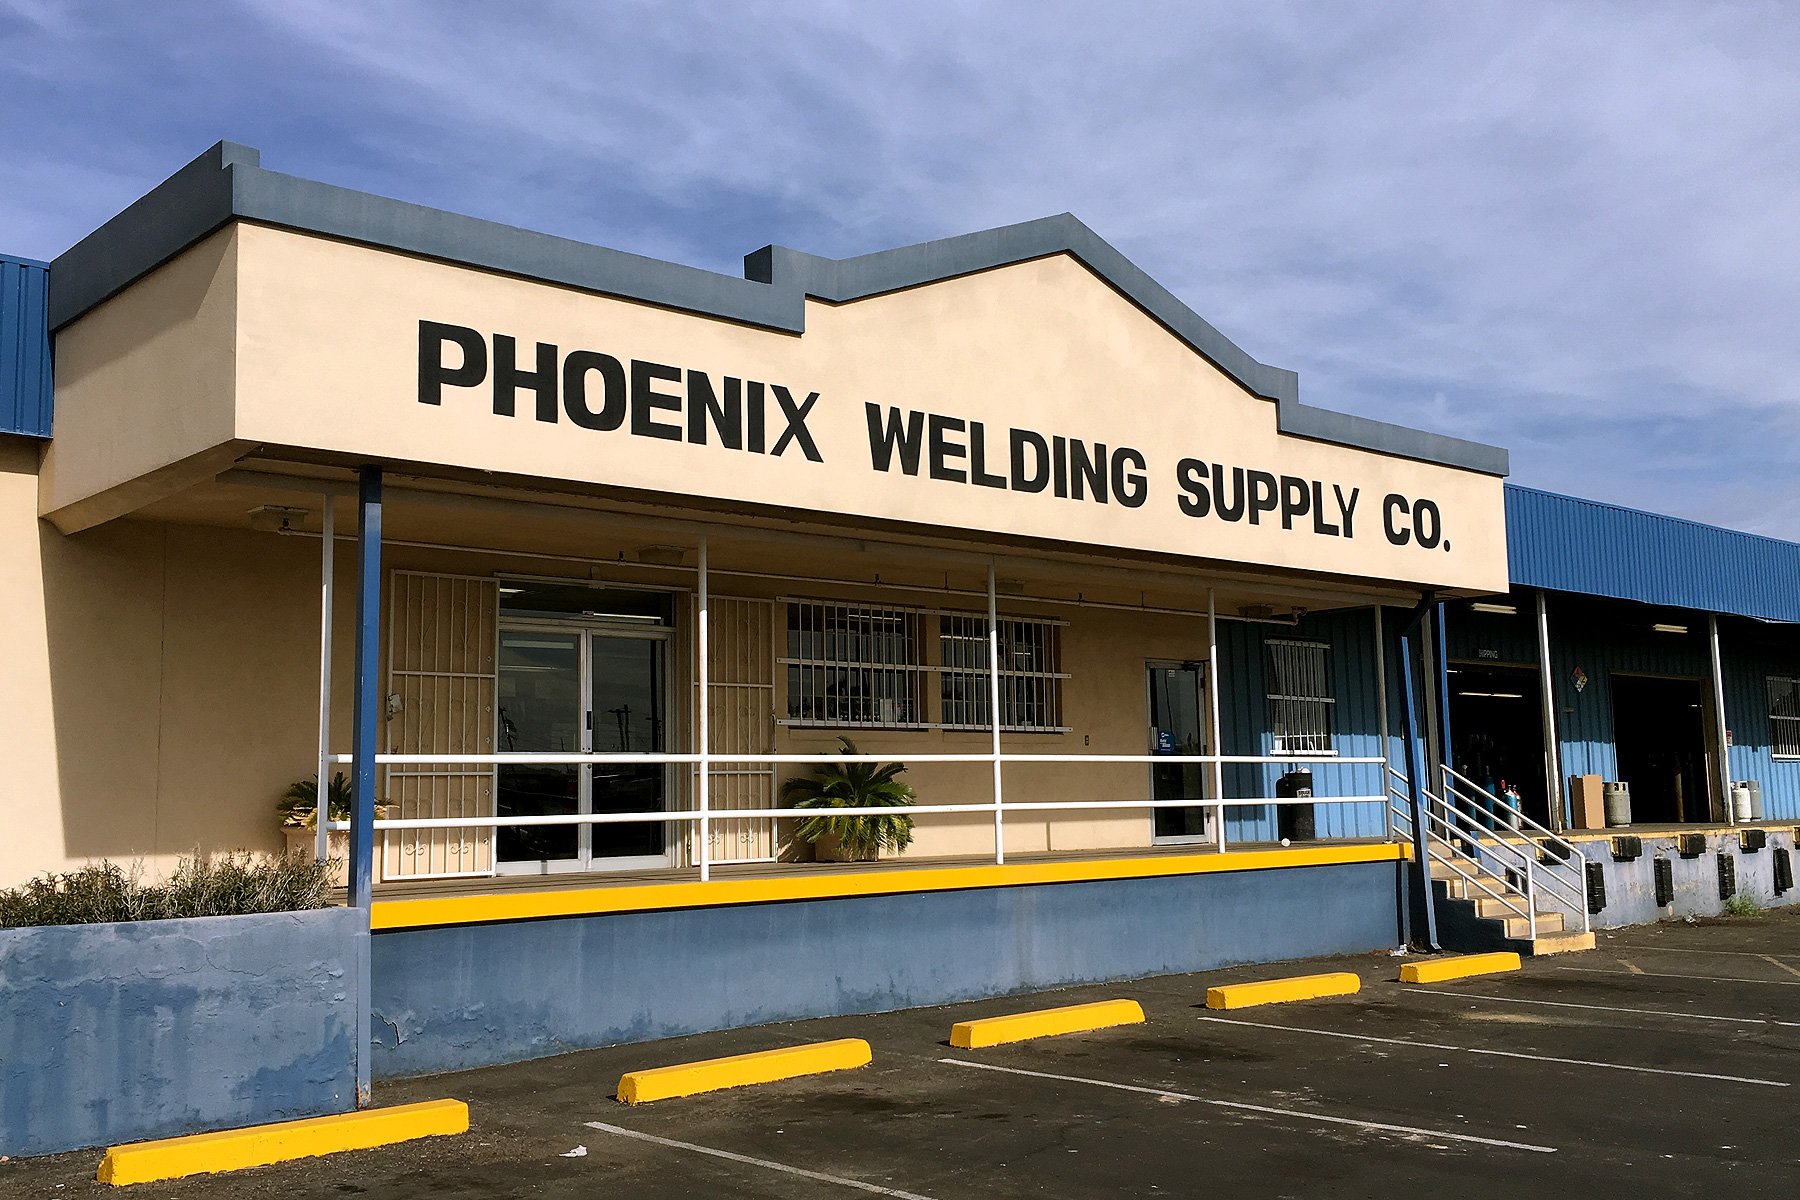 phoenix welding supply store